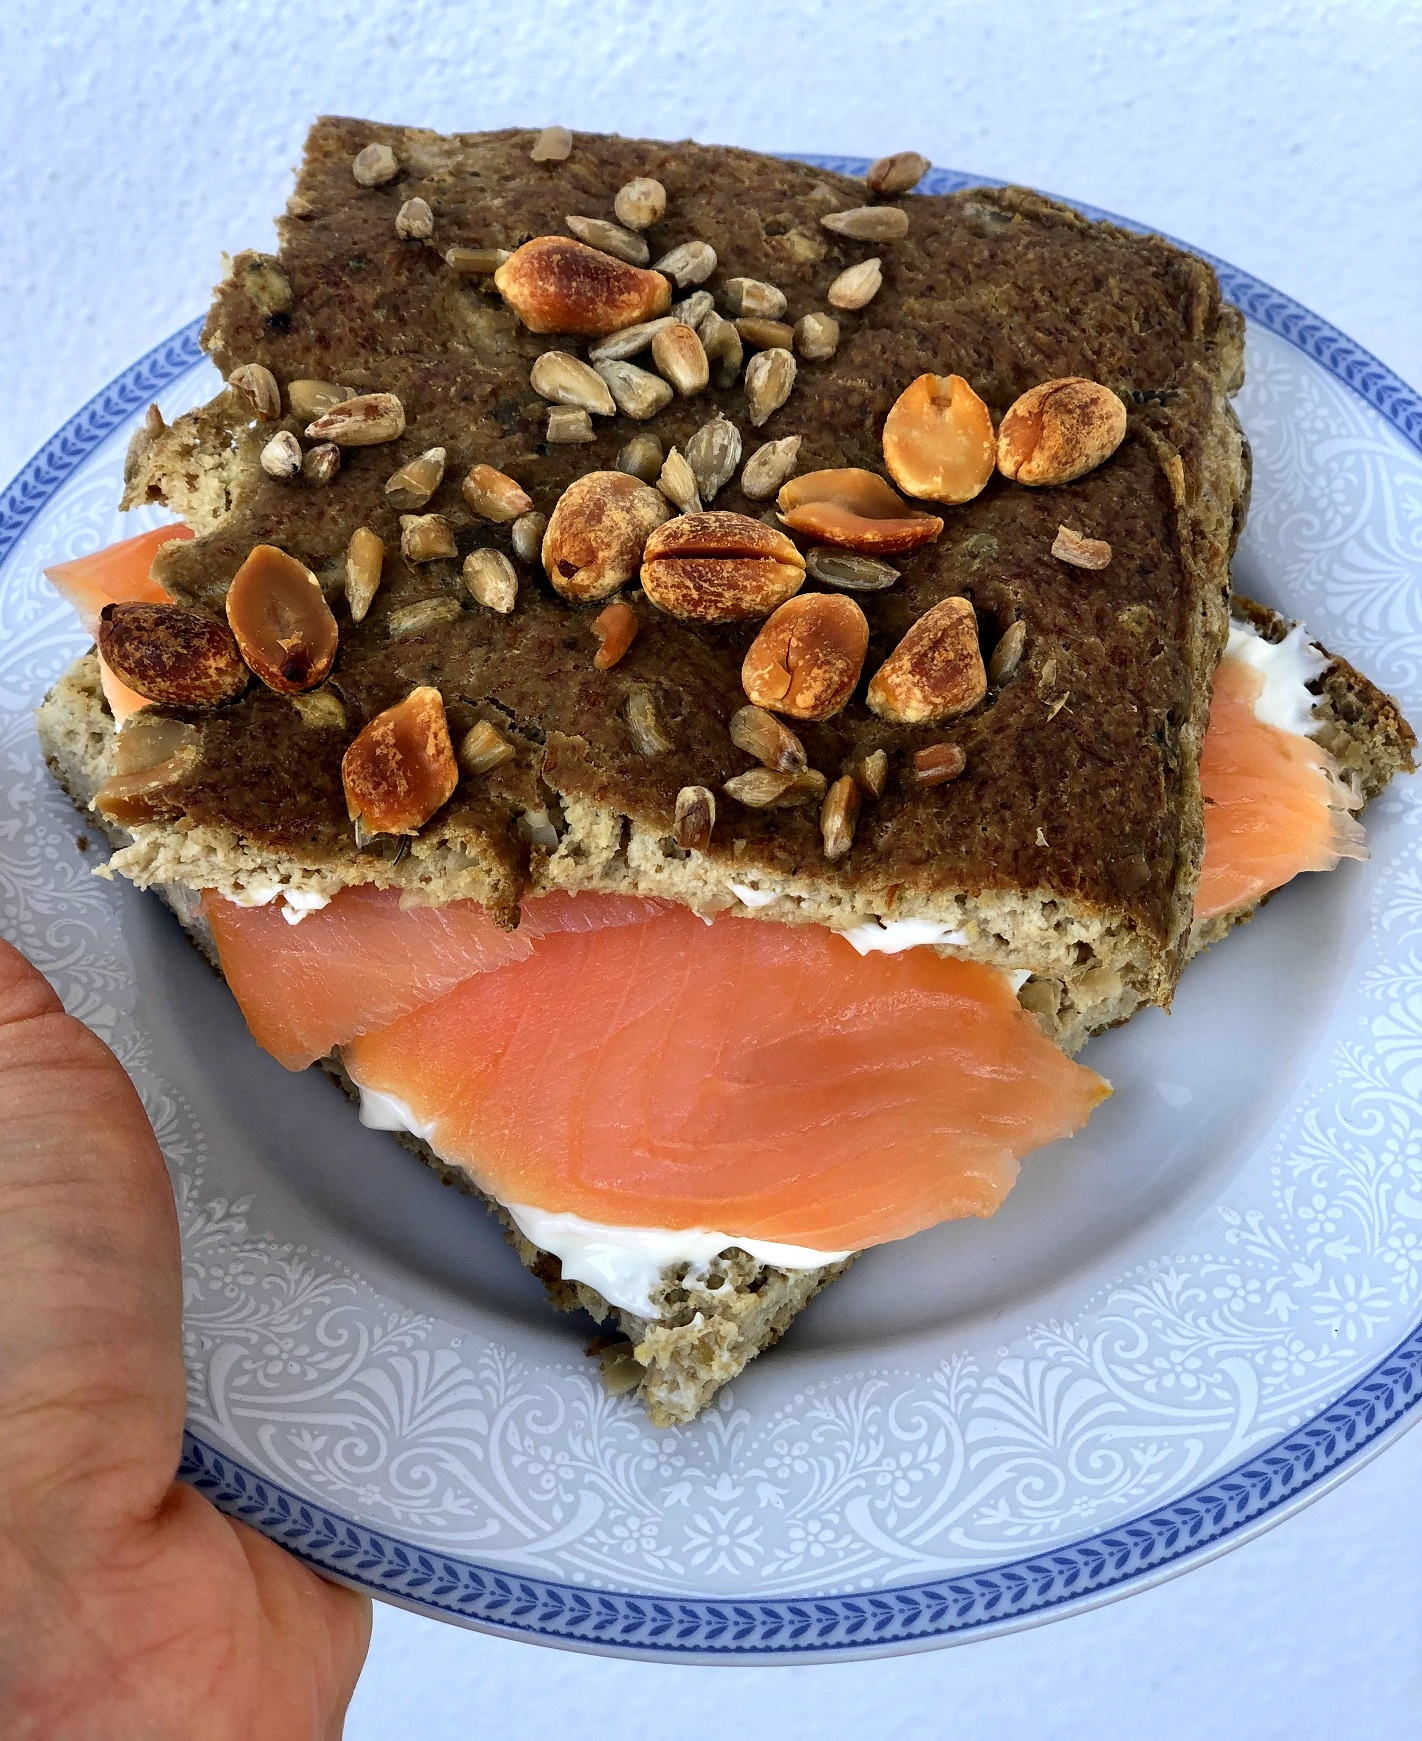 Sunflower bread with lentils and peanuts